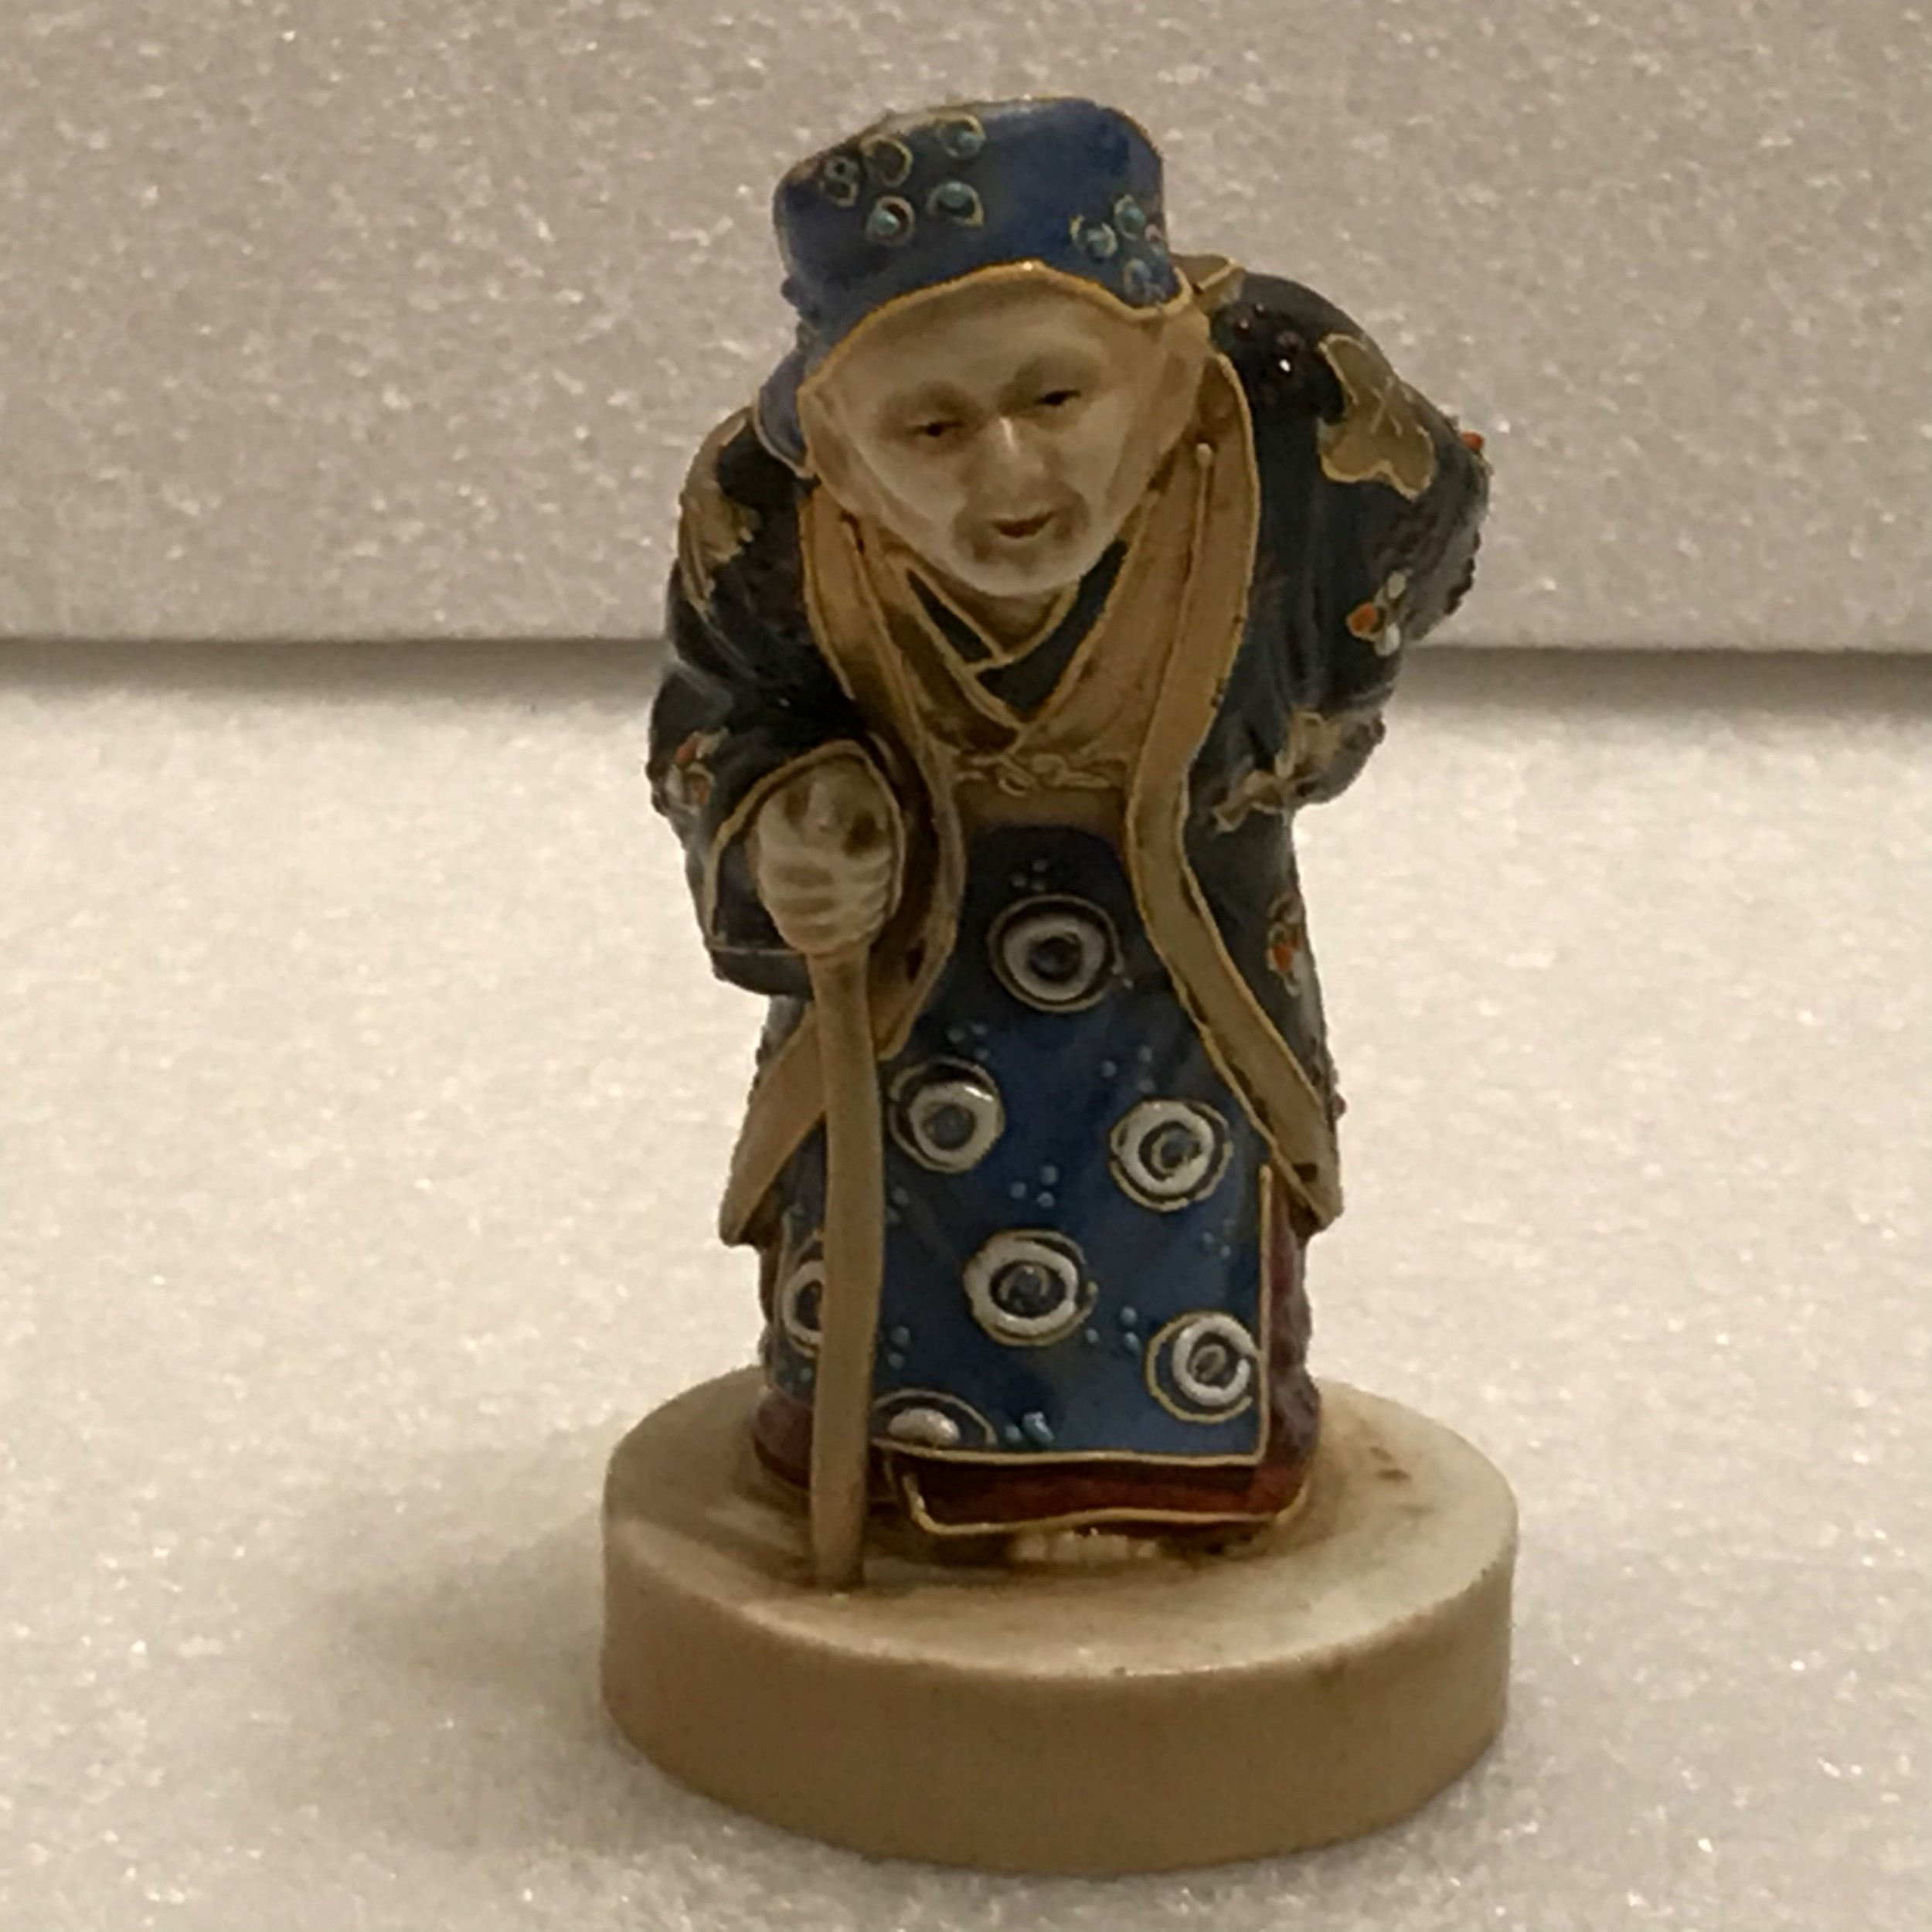 japanese porcelain figure of old wise man